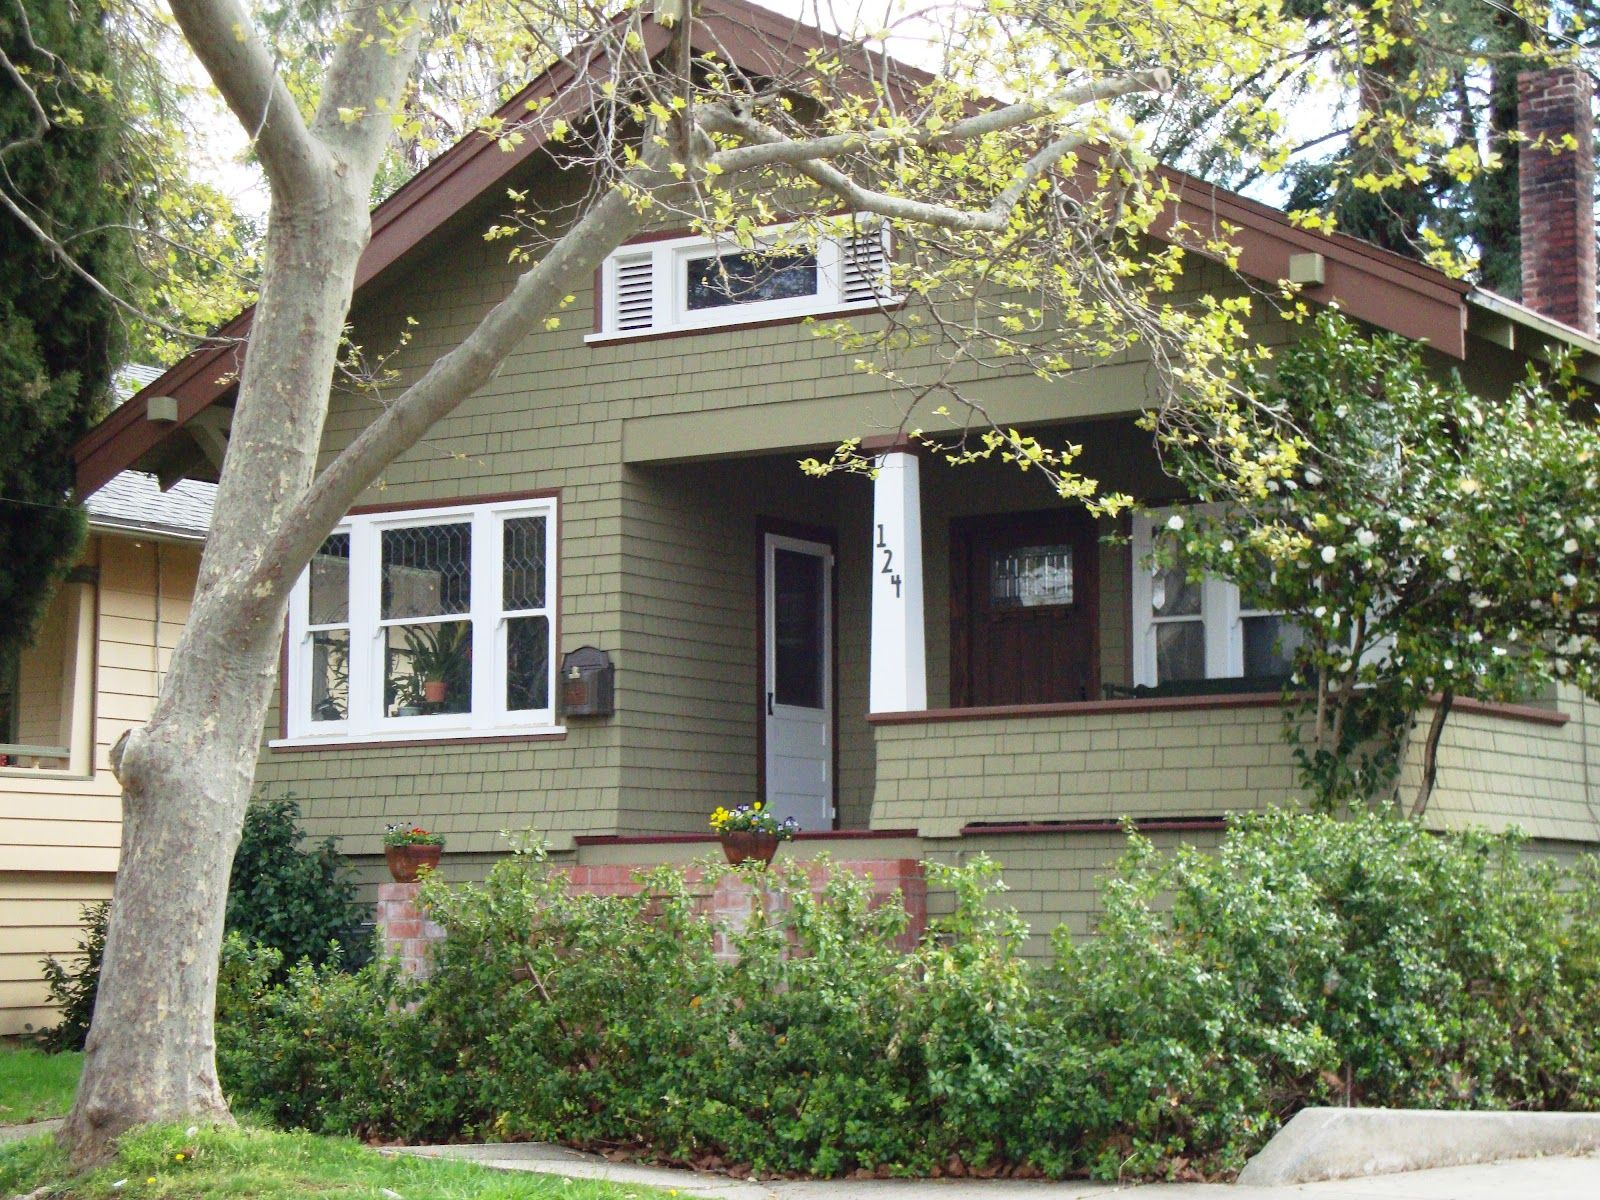 Popular Exterior House Paint Colors Suggested The Exterior Color Be Updated To Sage Green